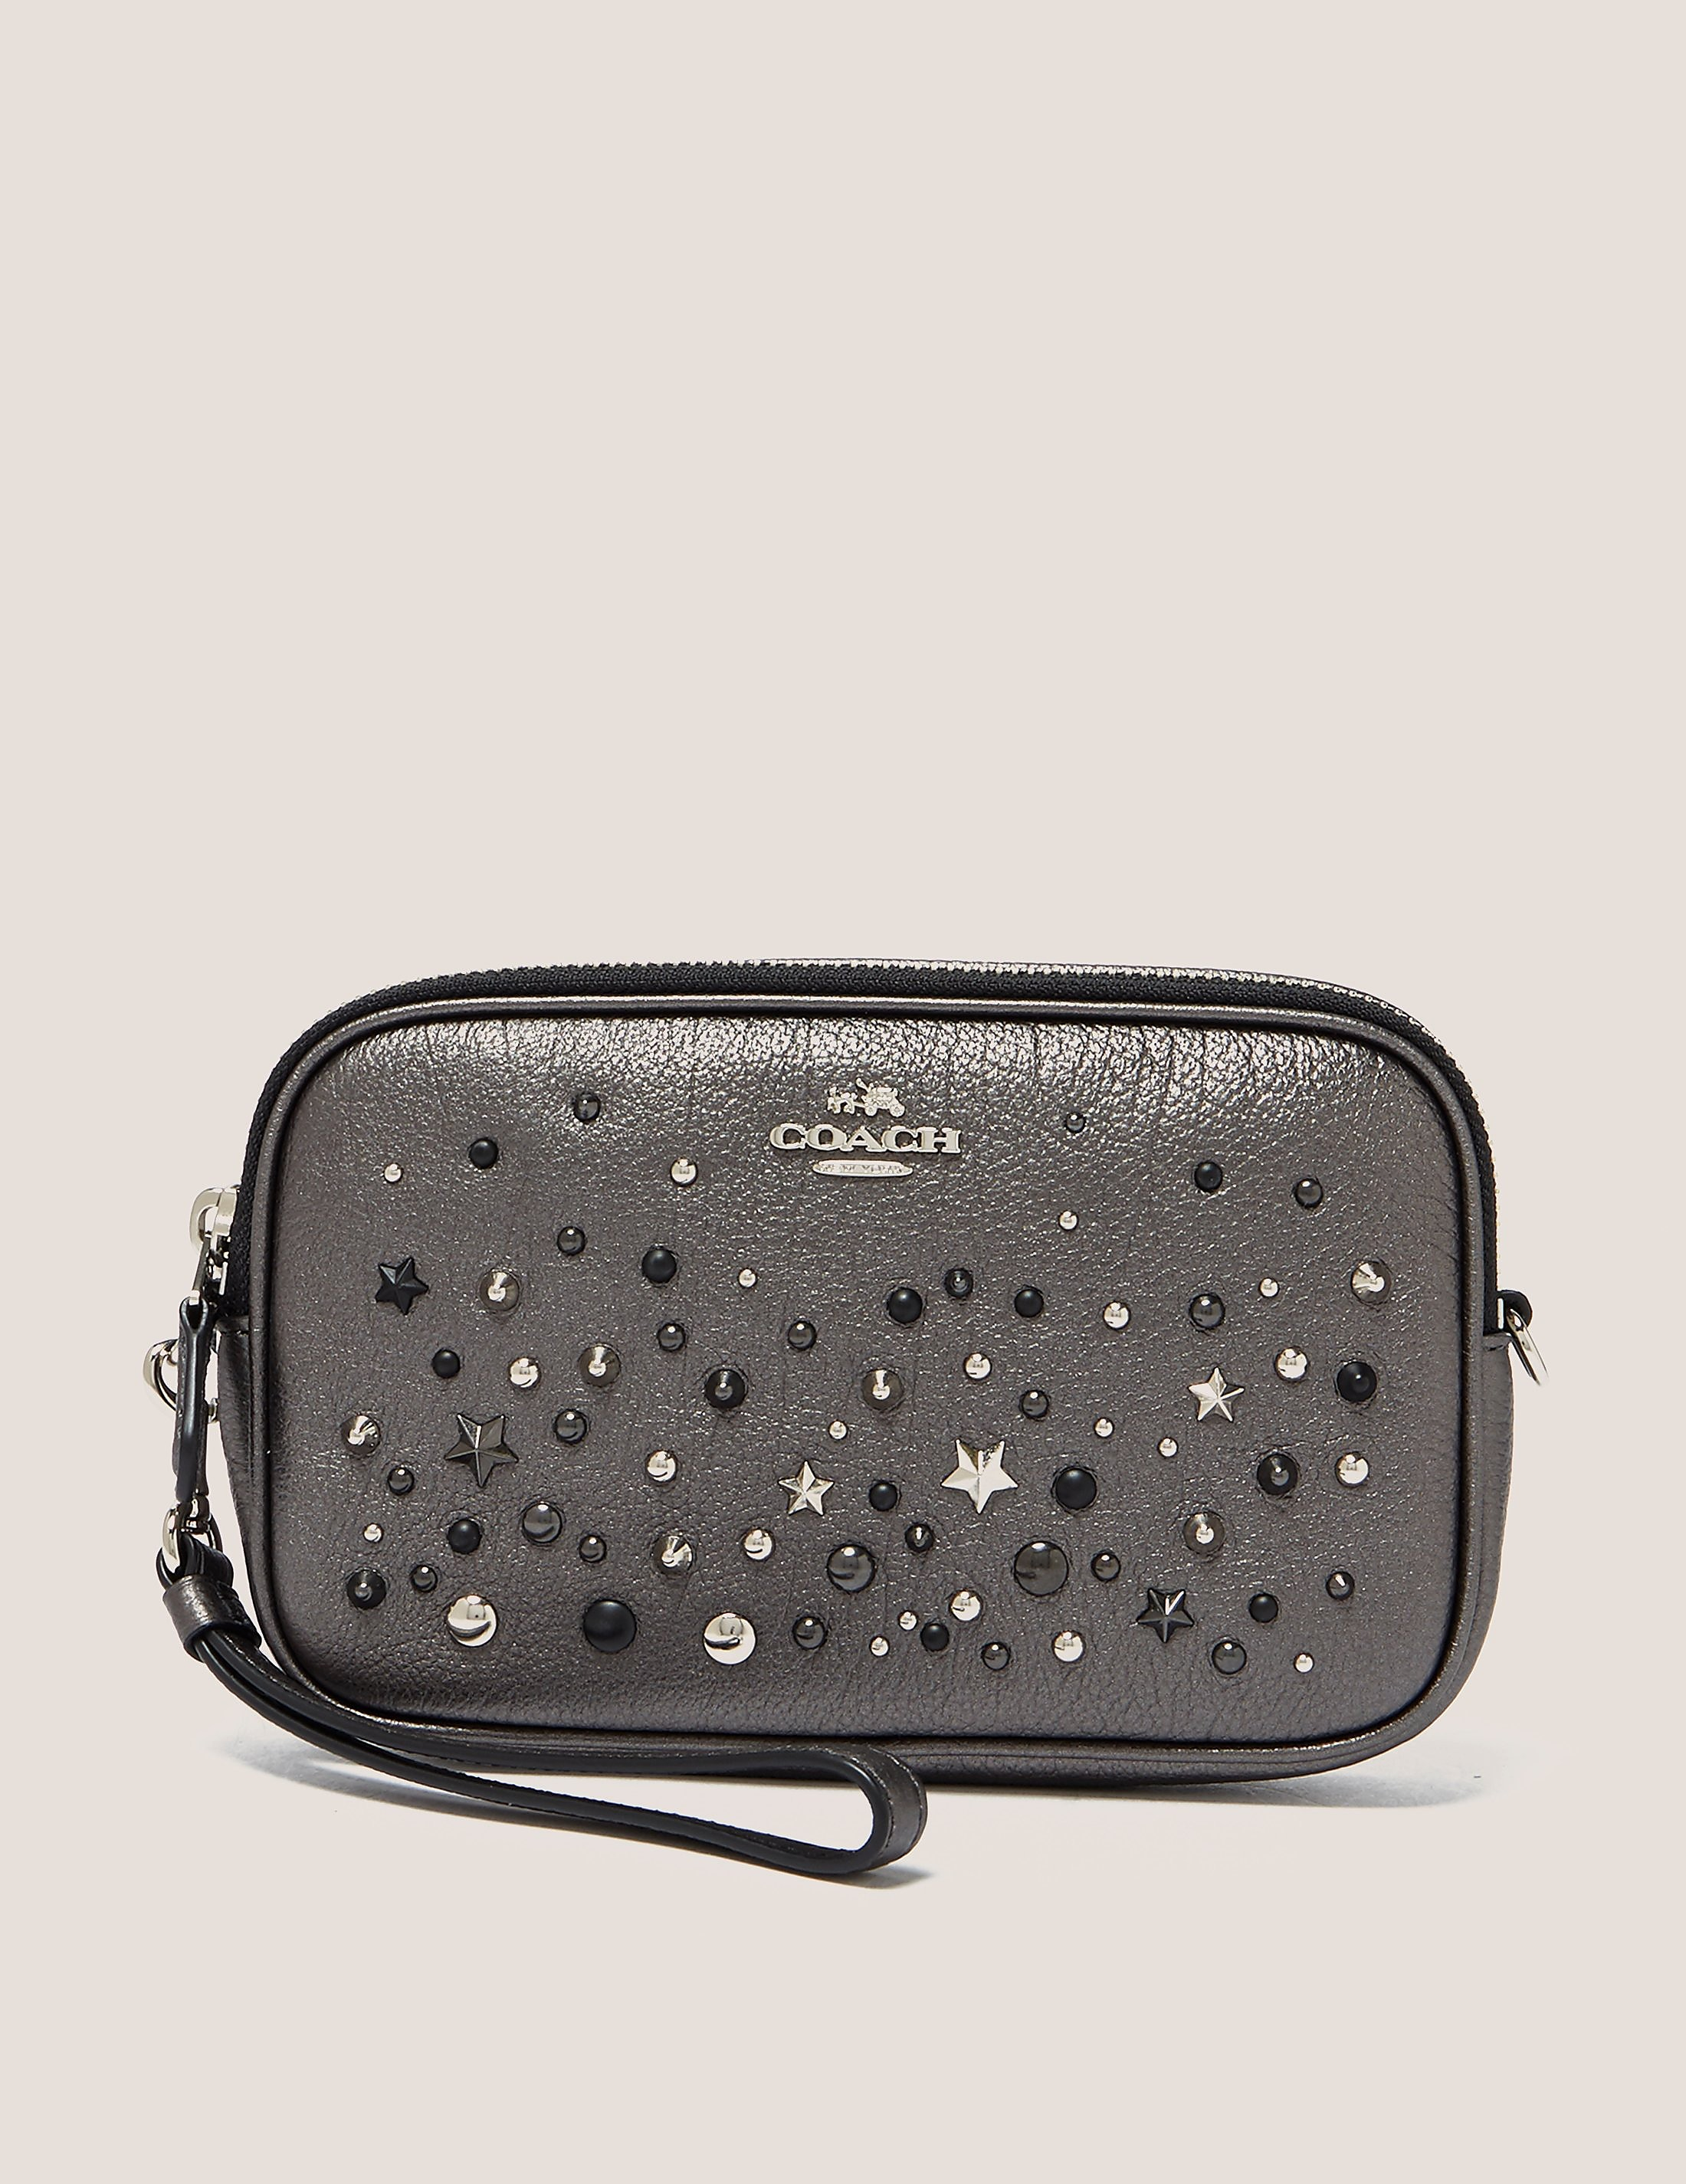 COACH Embellished Crossbody Clutch